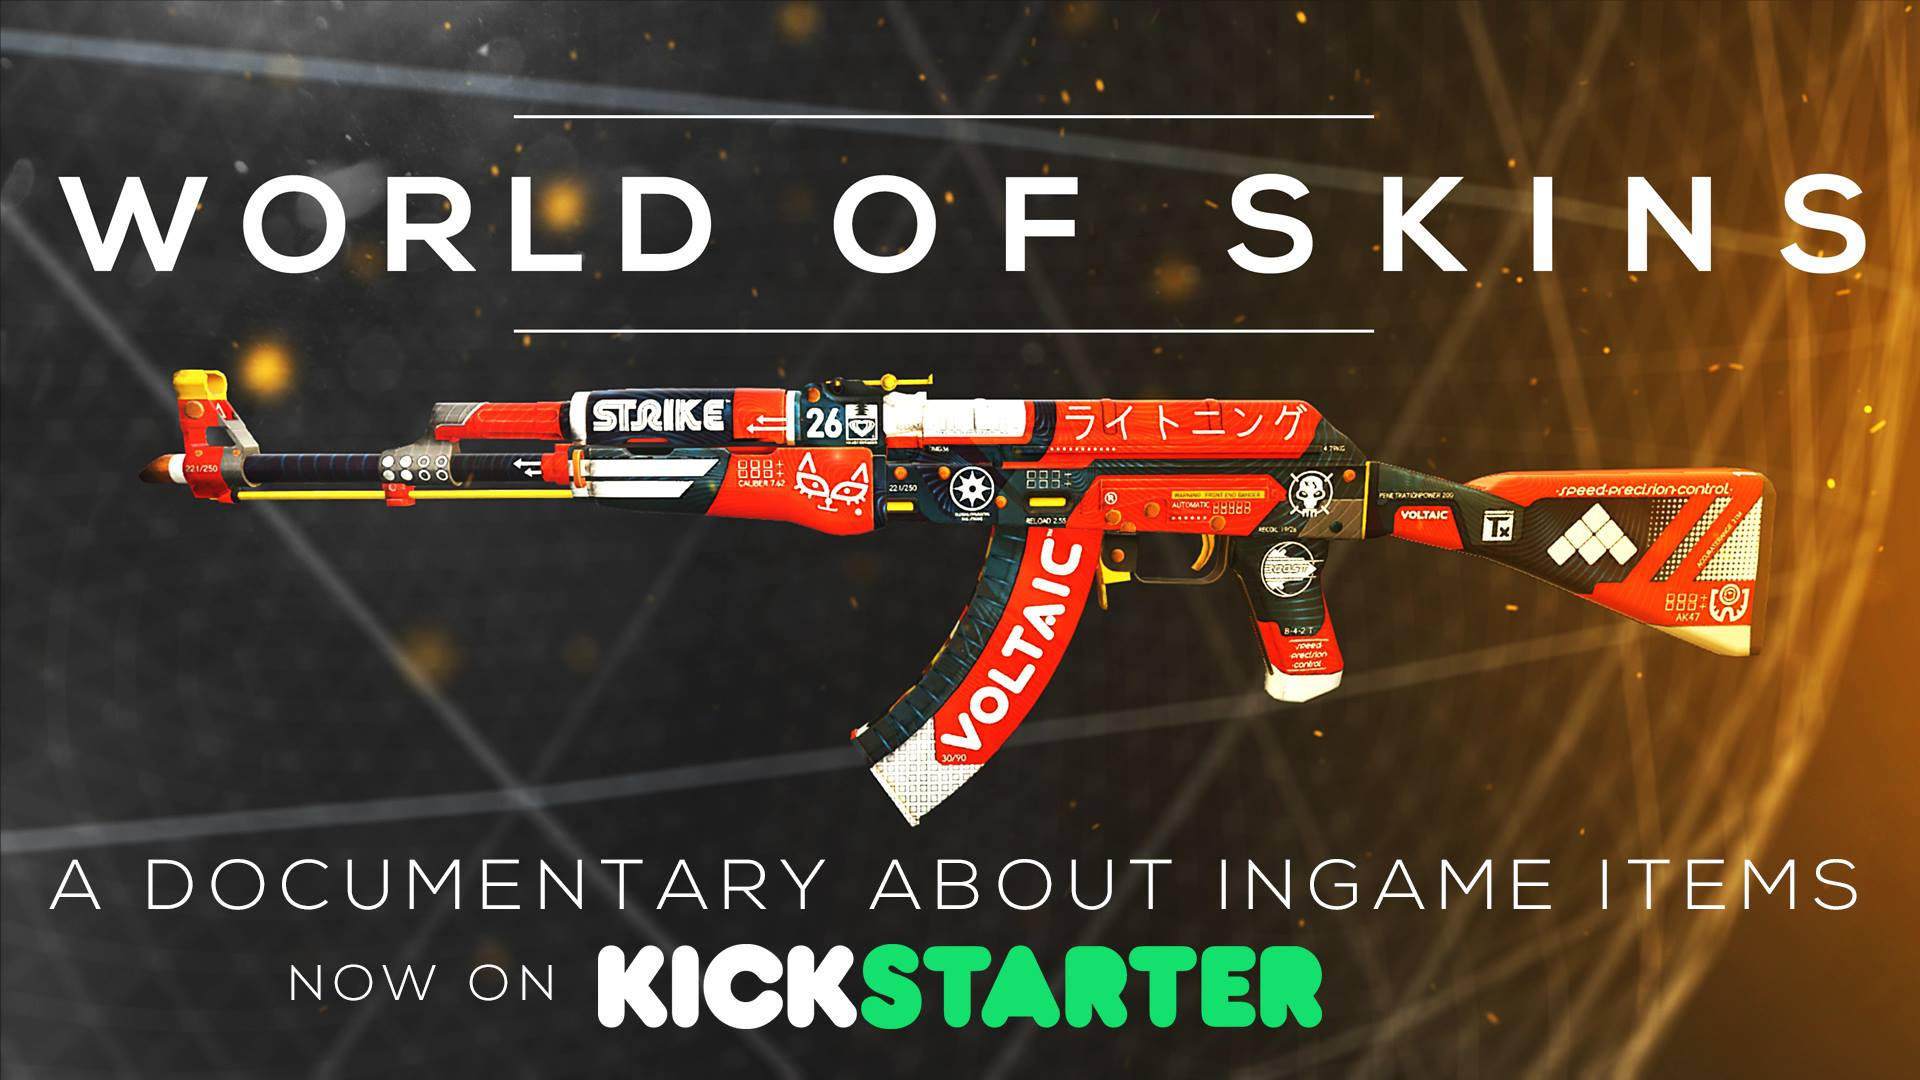 World of Skins on Kickstarter